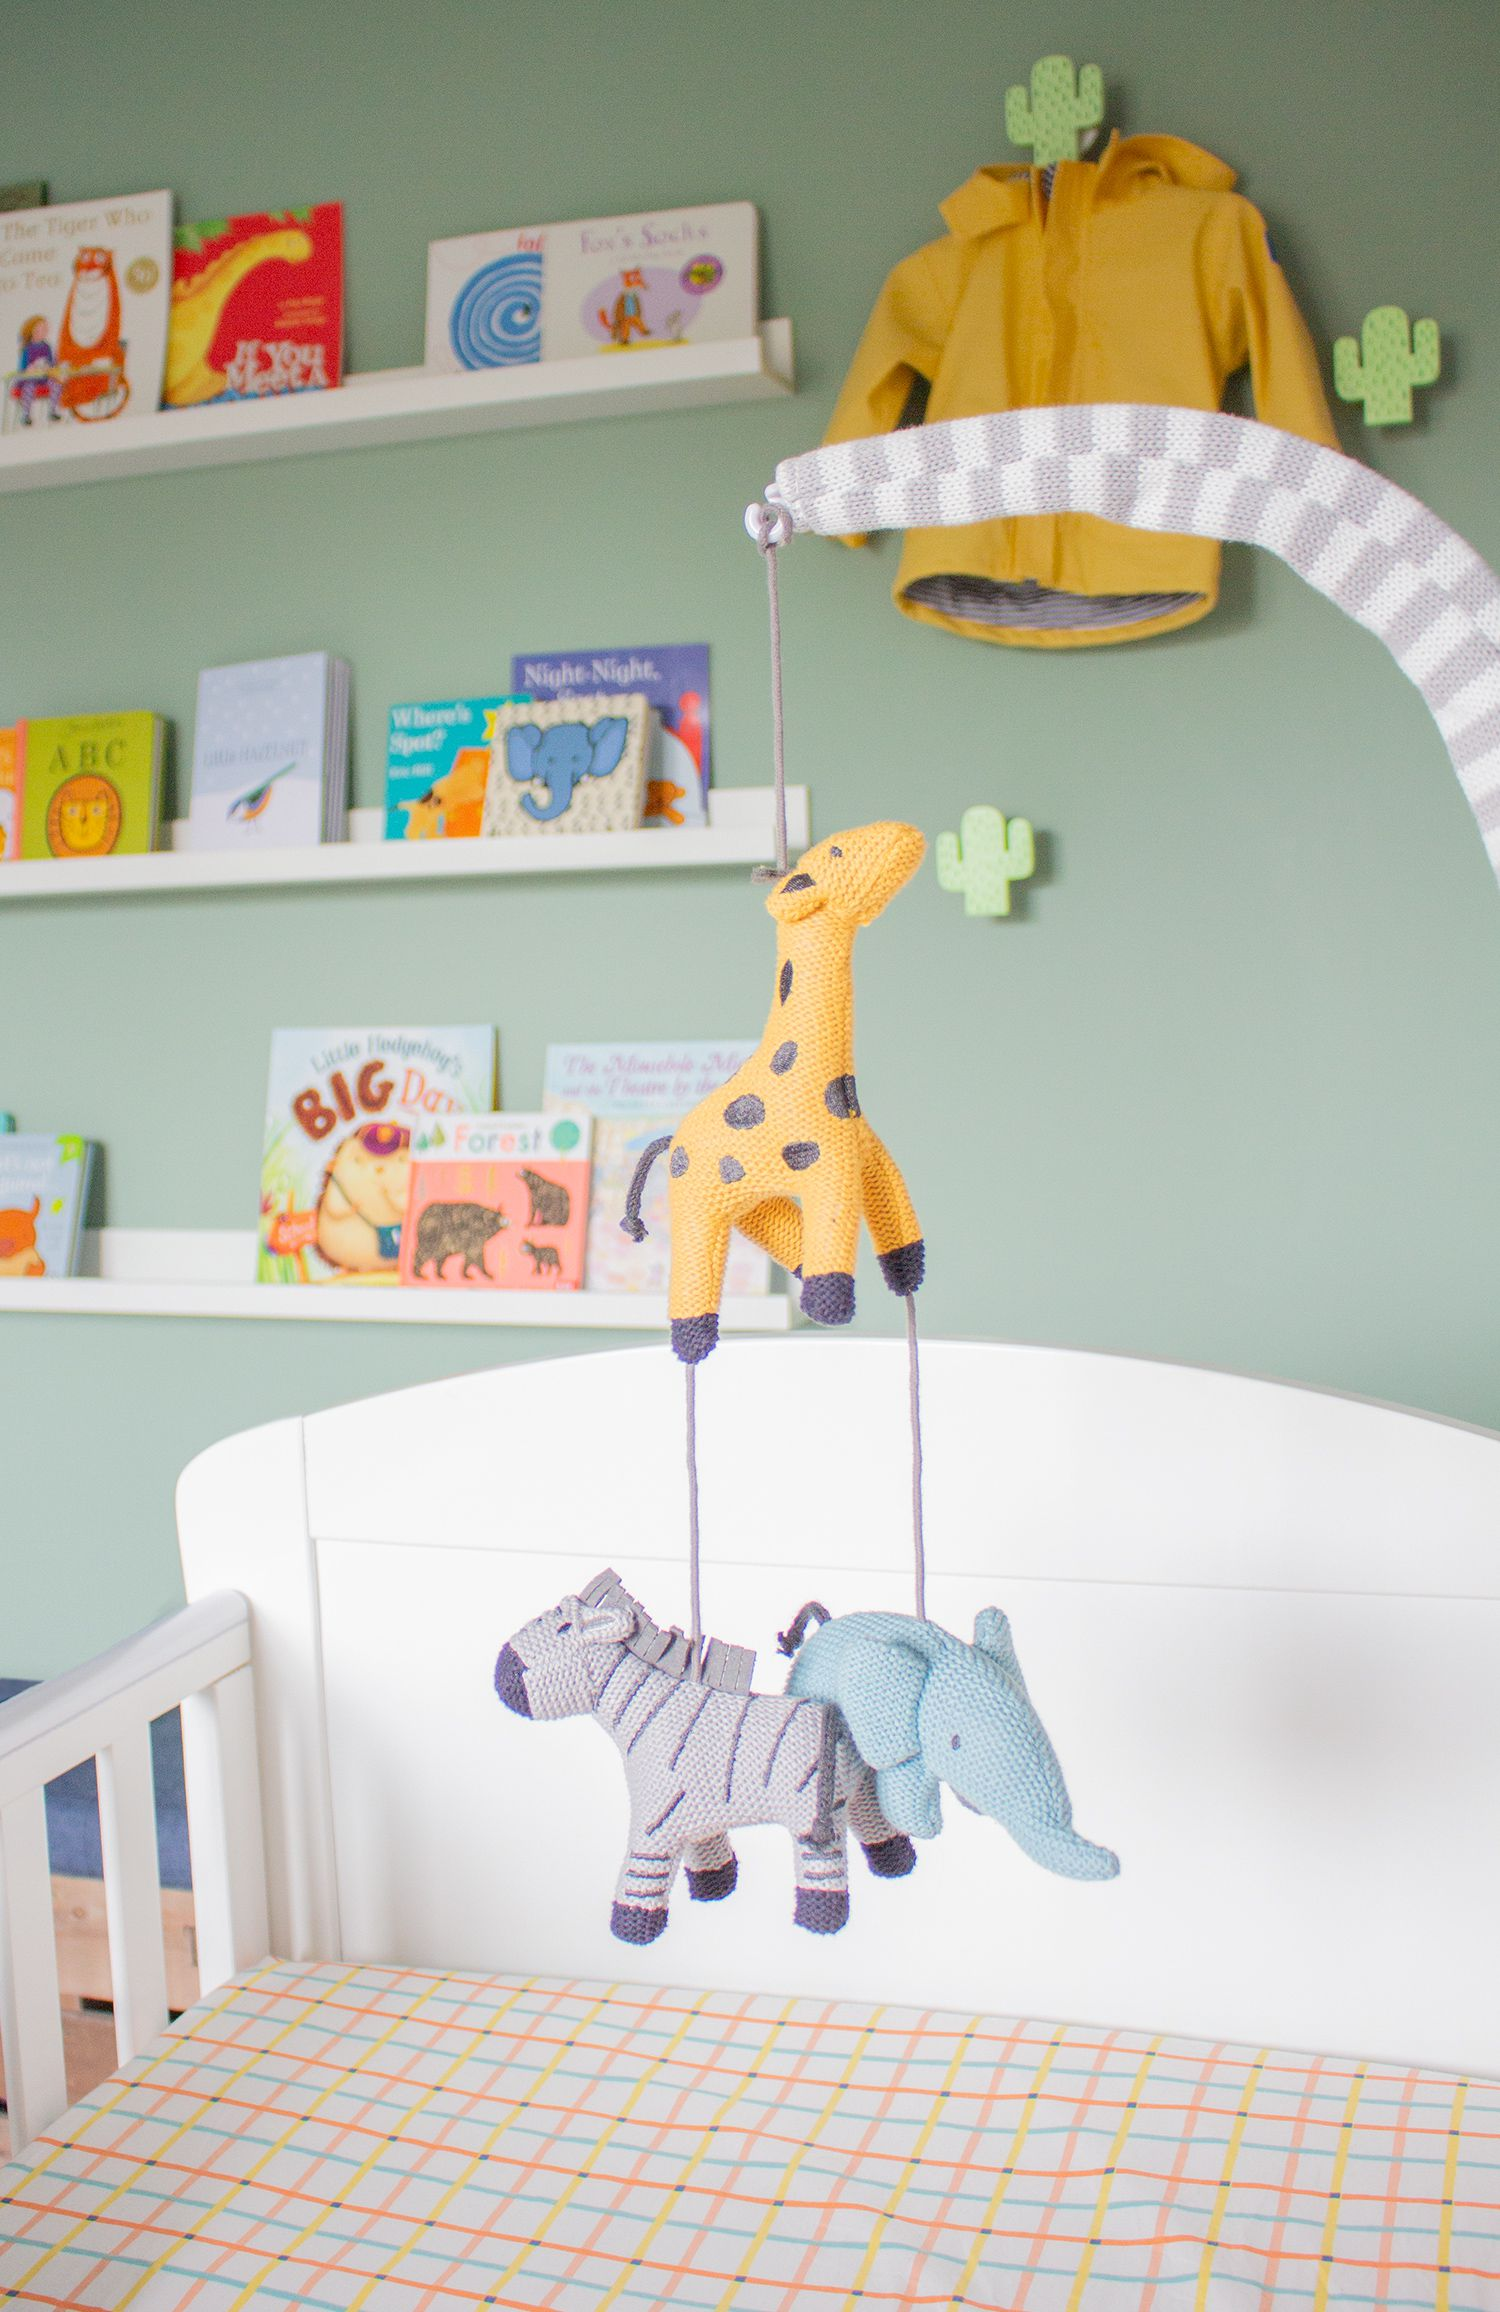 A close up of the soft toy cot mobile which has a giraffe, an elephant and a zebra.